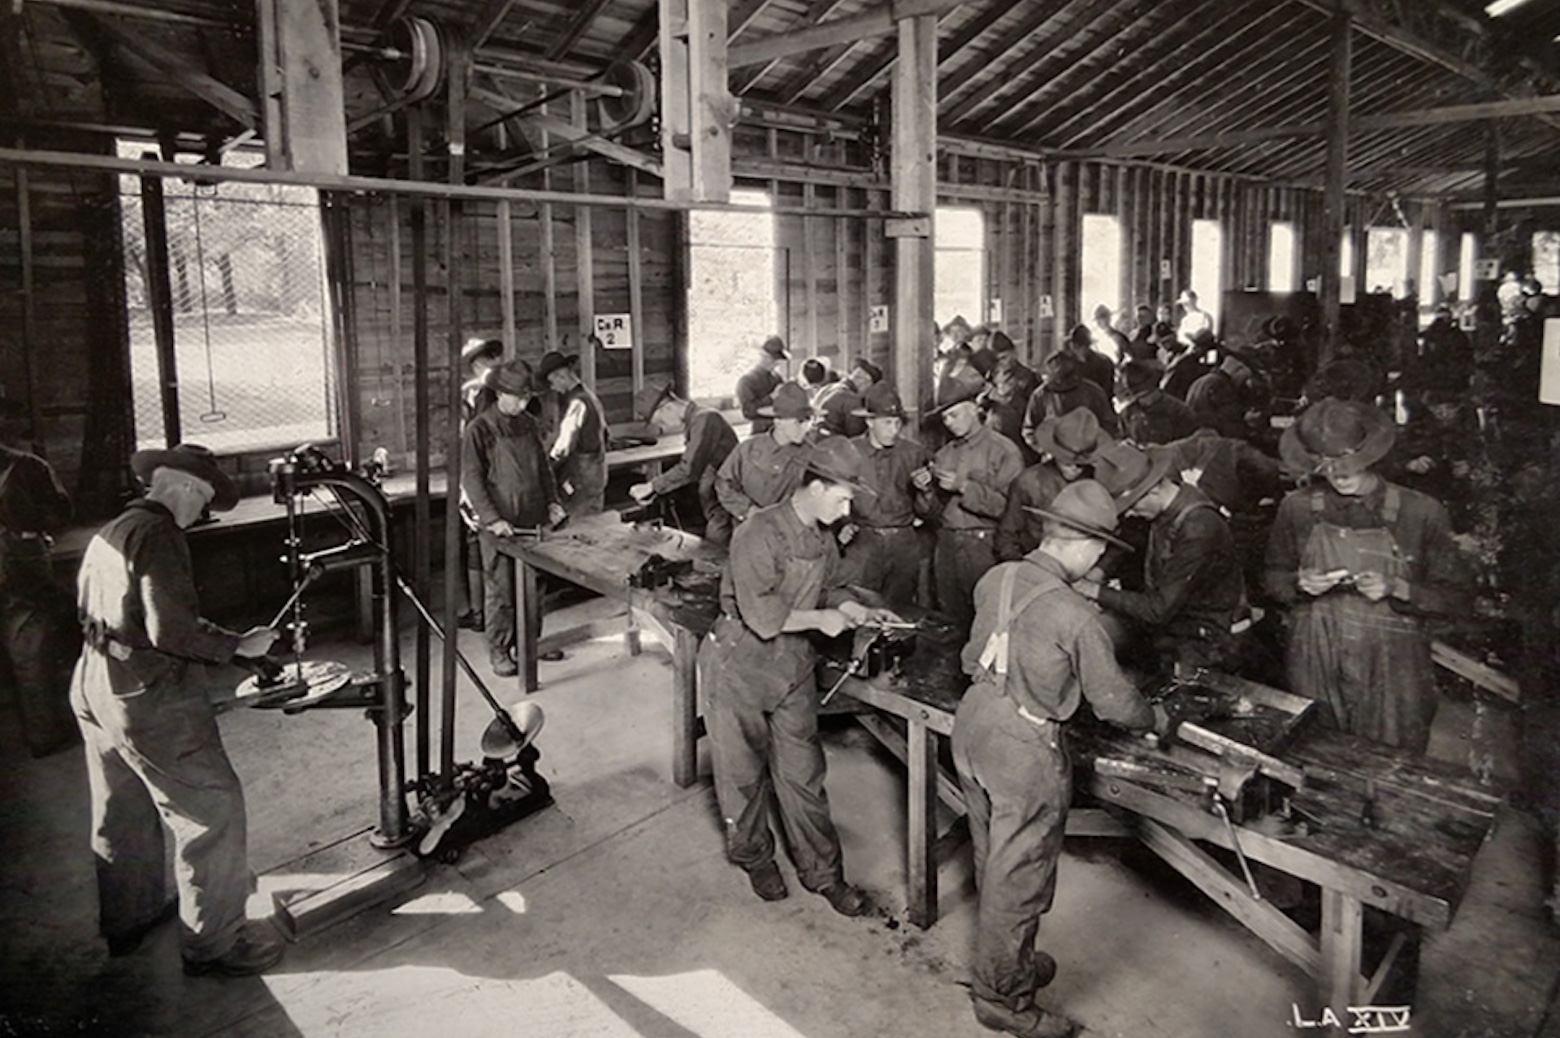 Men working on cars in workshop